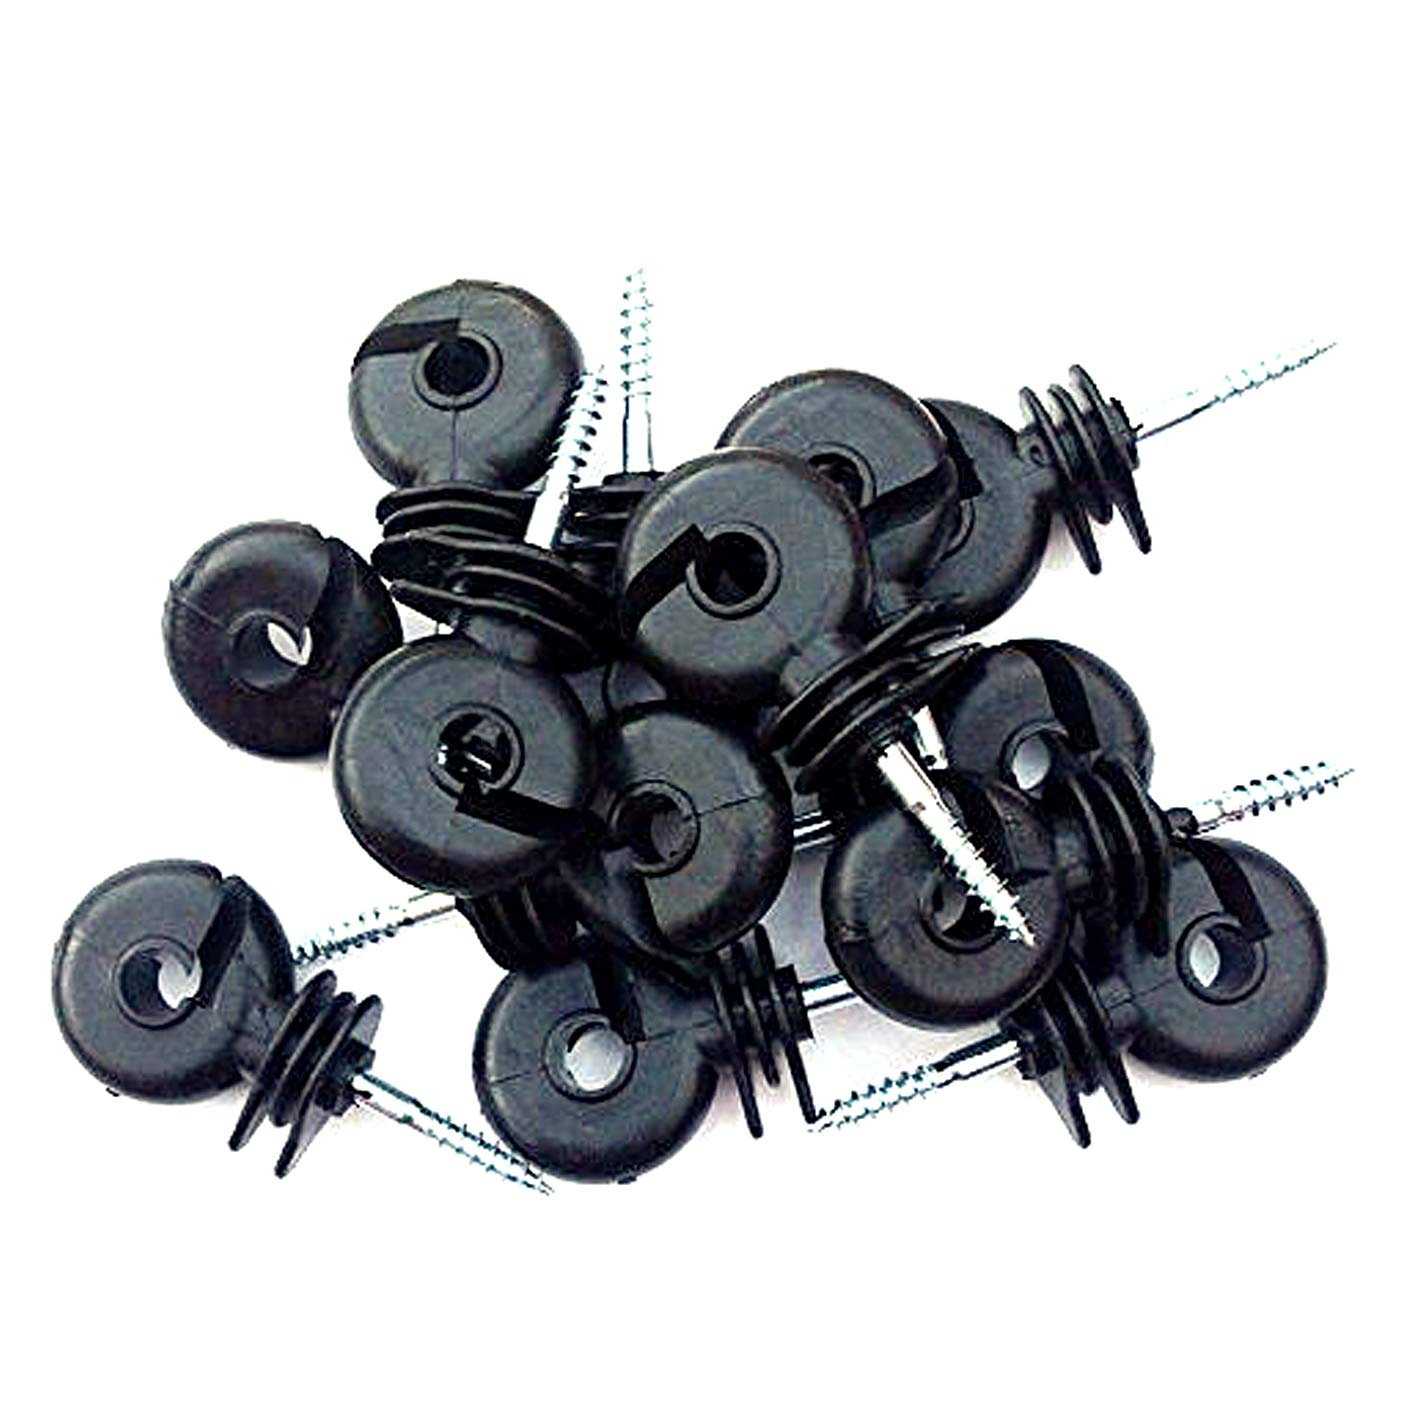 100 x Electric Fencing Ring Insulators Electrifence